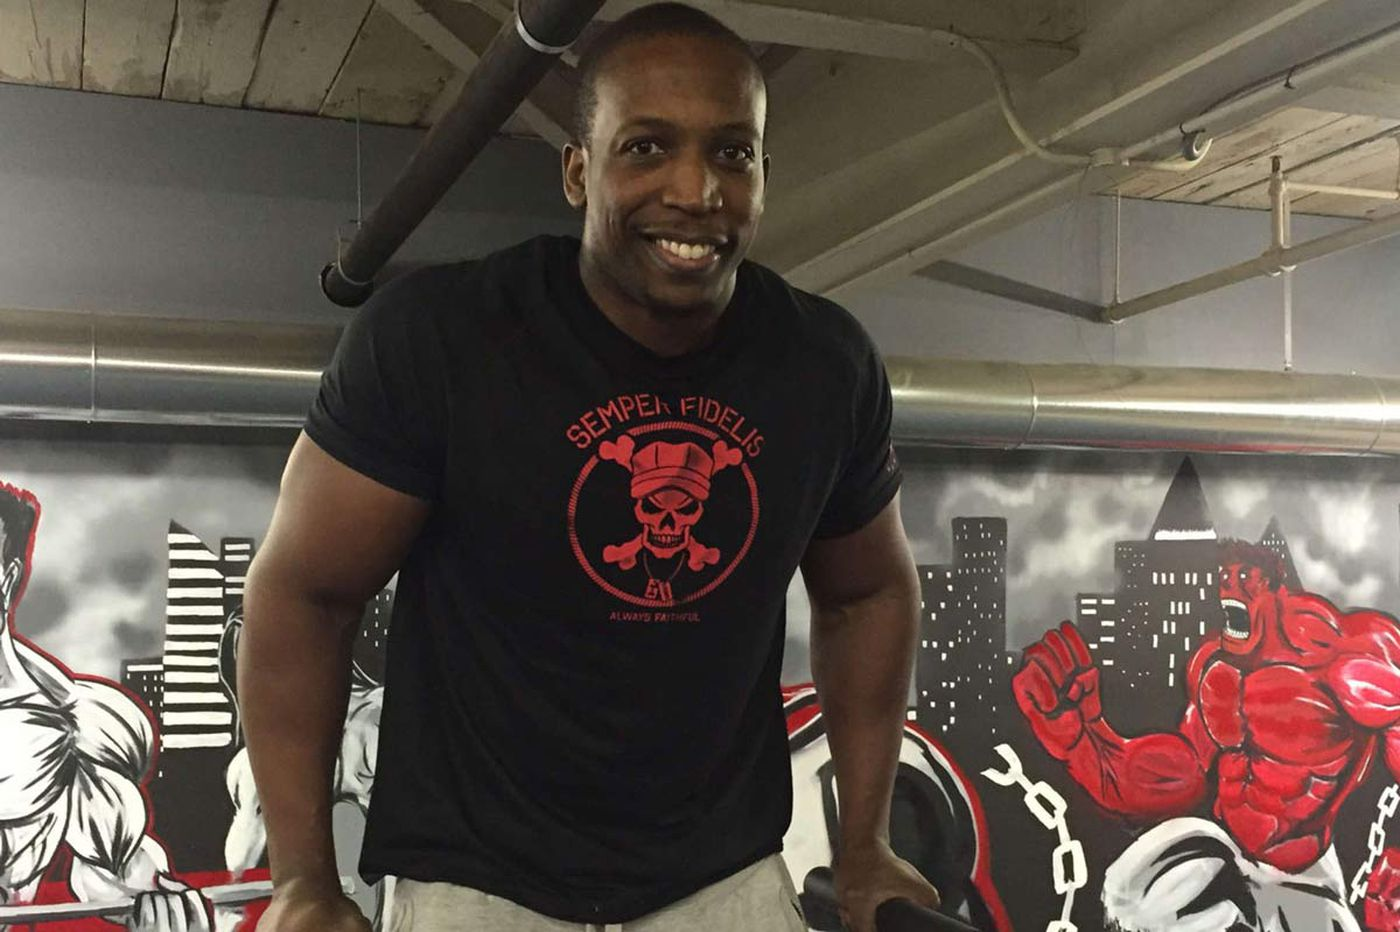 Personal fitness trainer has a new gym in East Falls